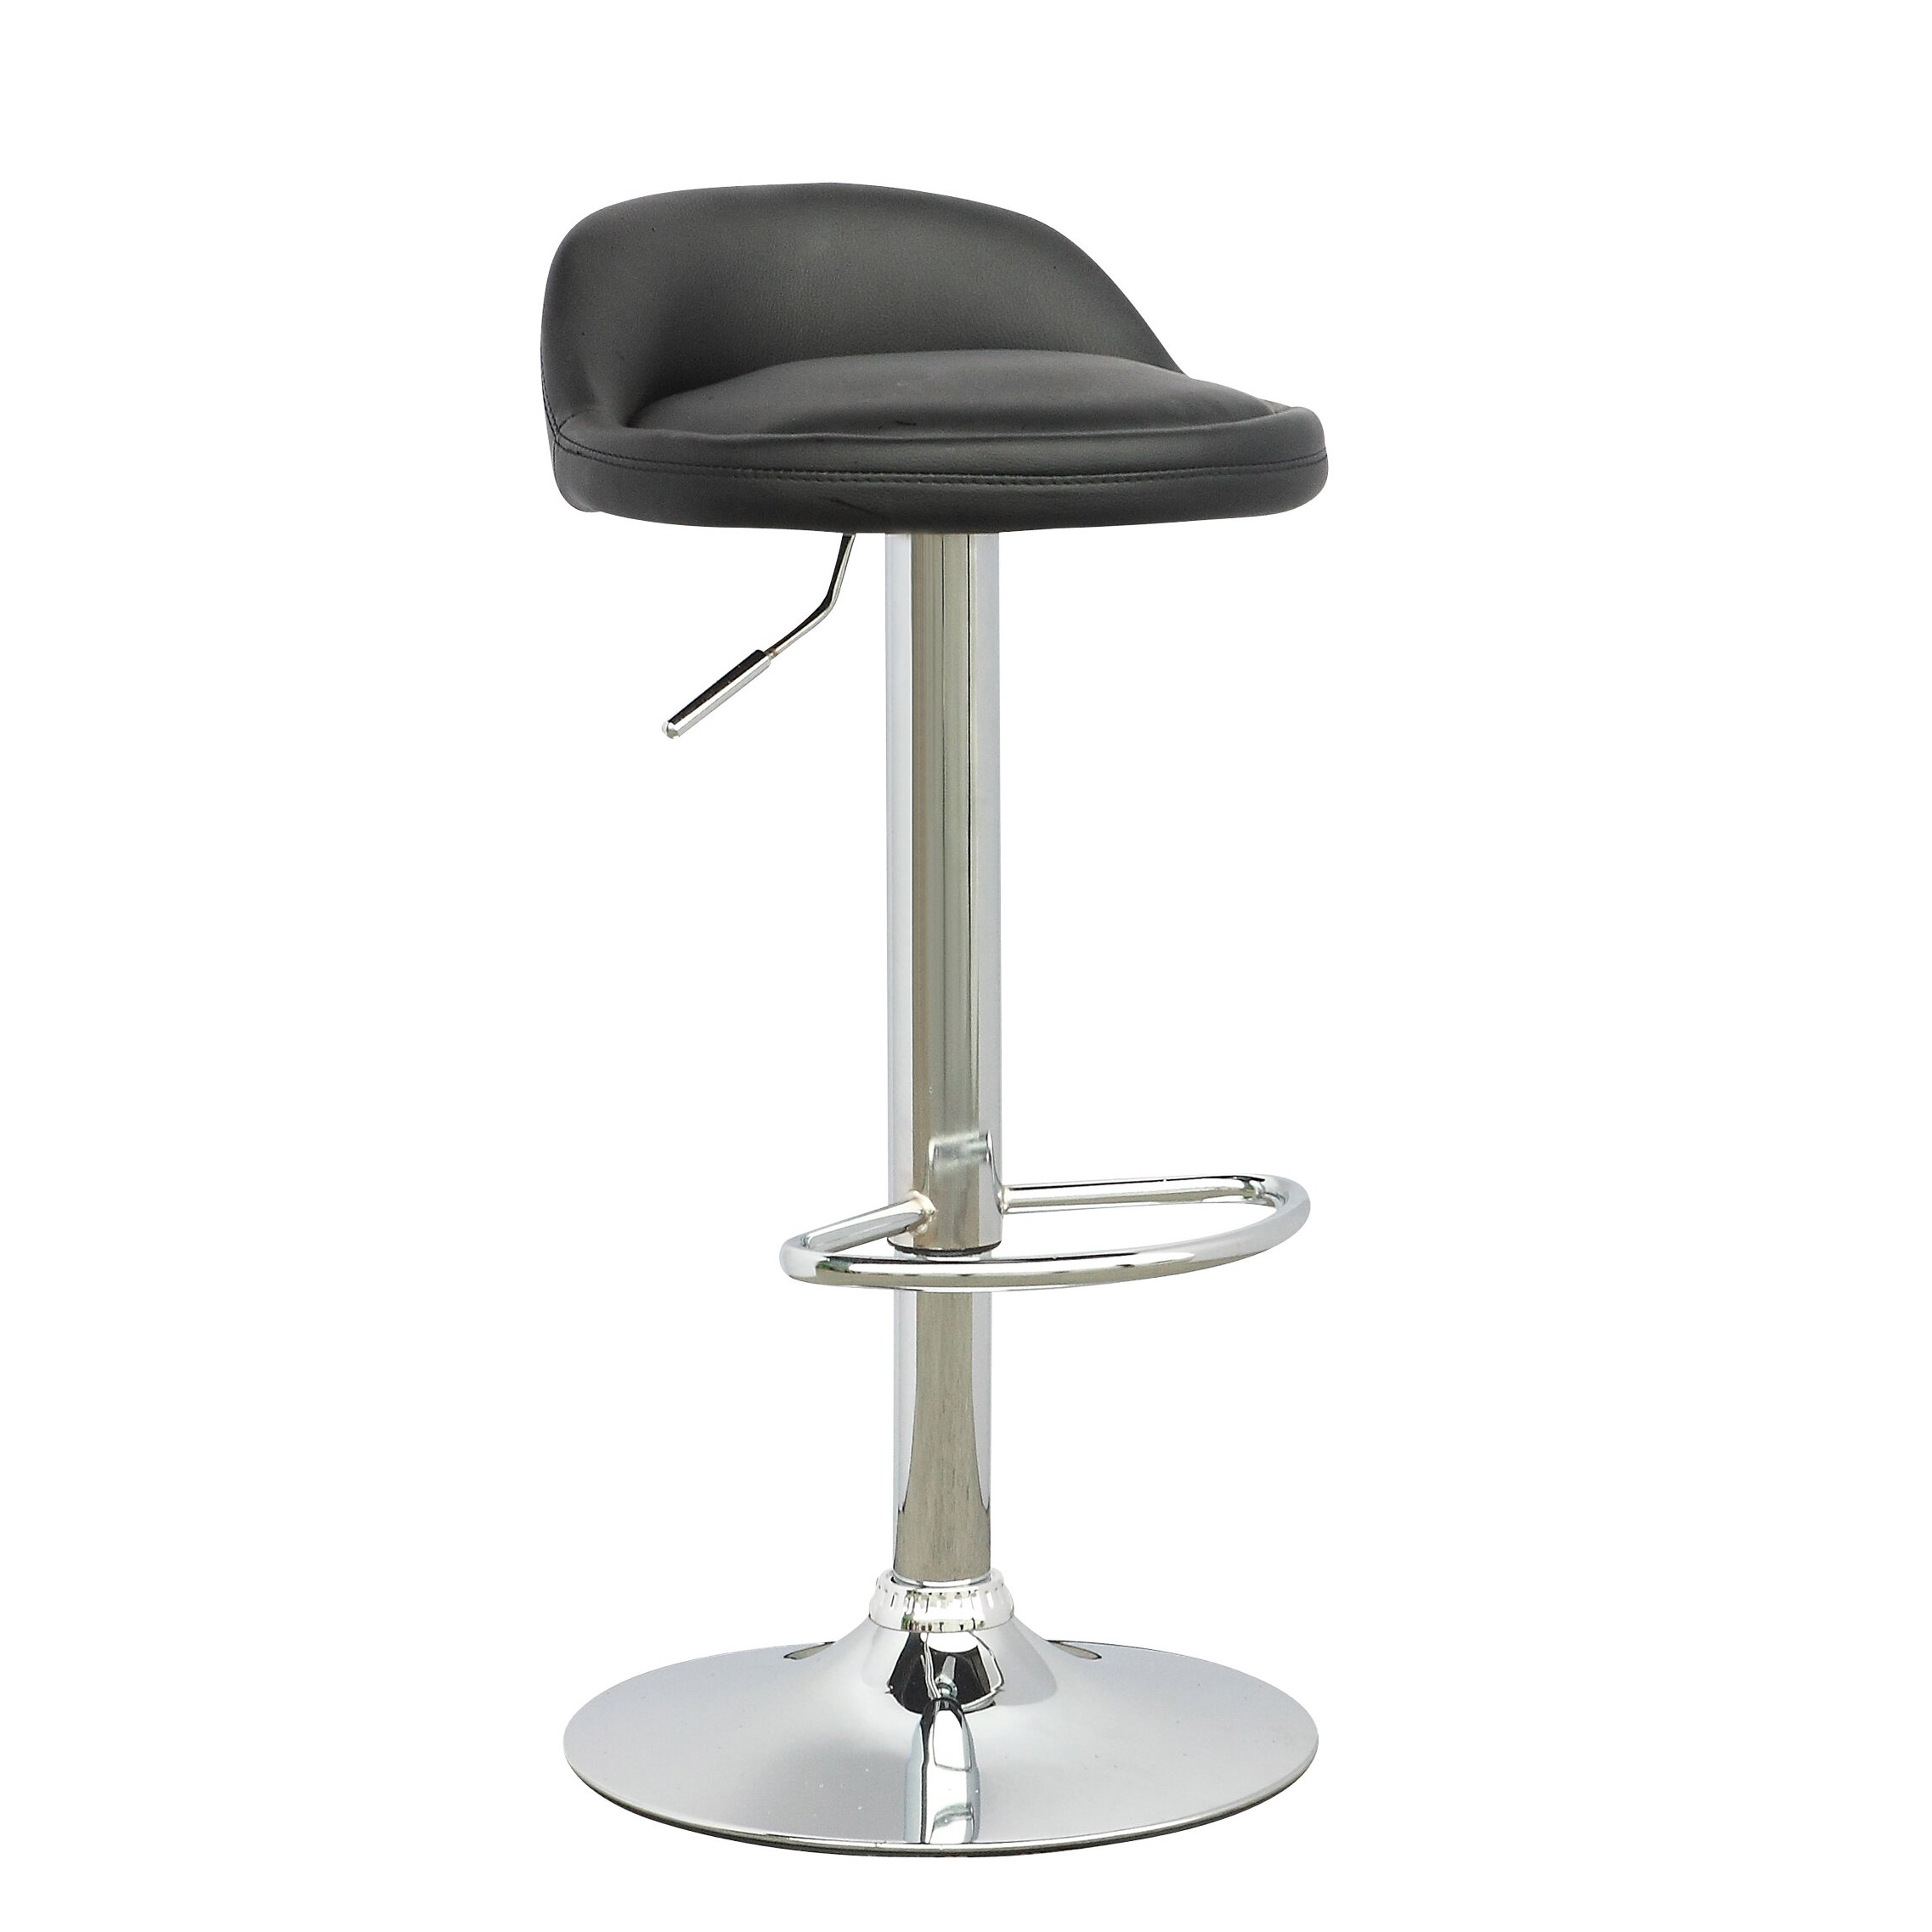 Corliving adjustable height swivel bar stool reviews for Counter height swivel bar stools